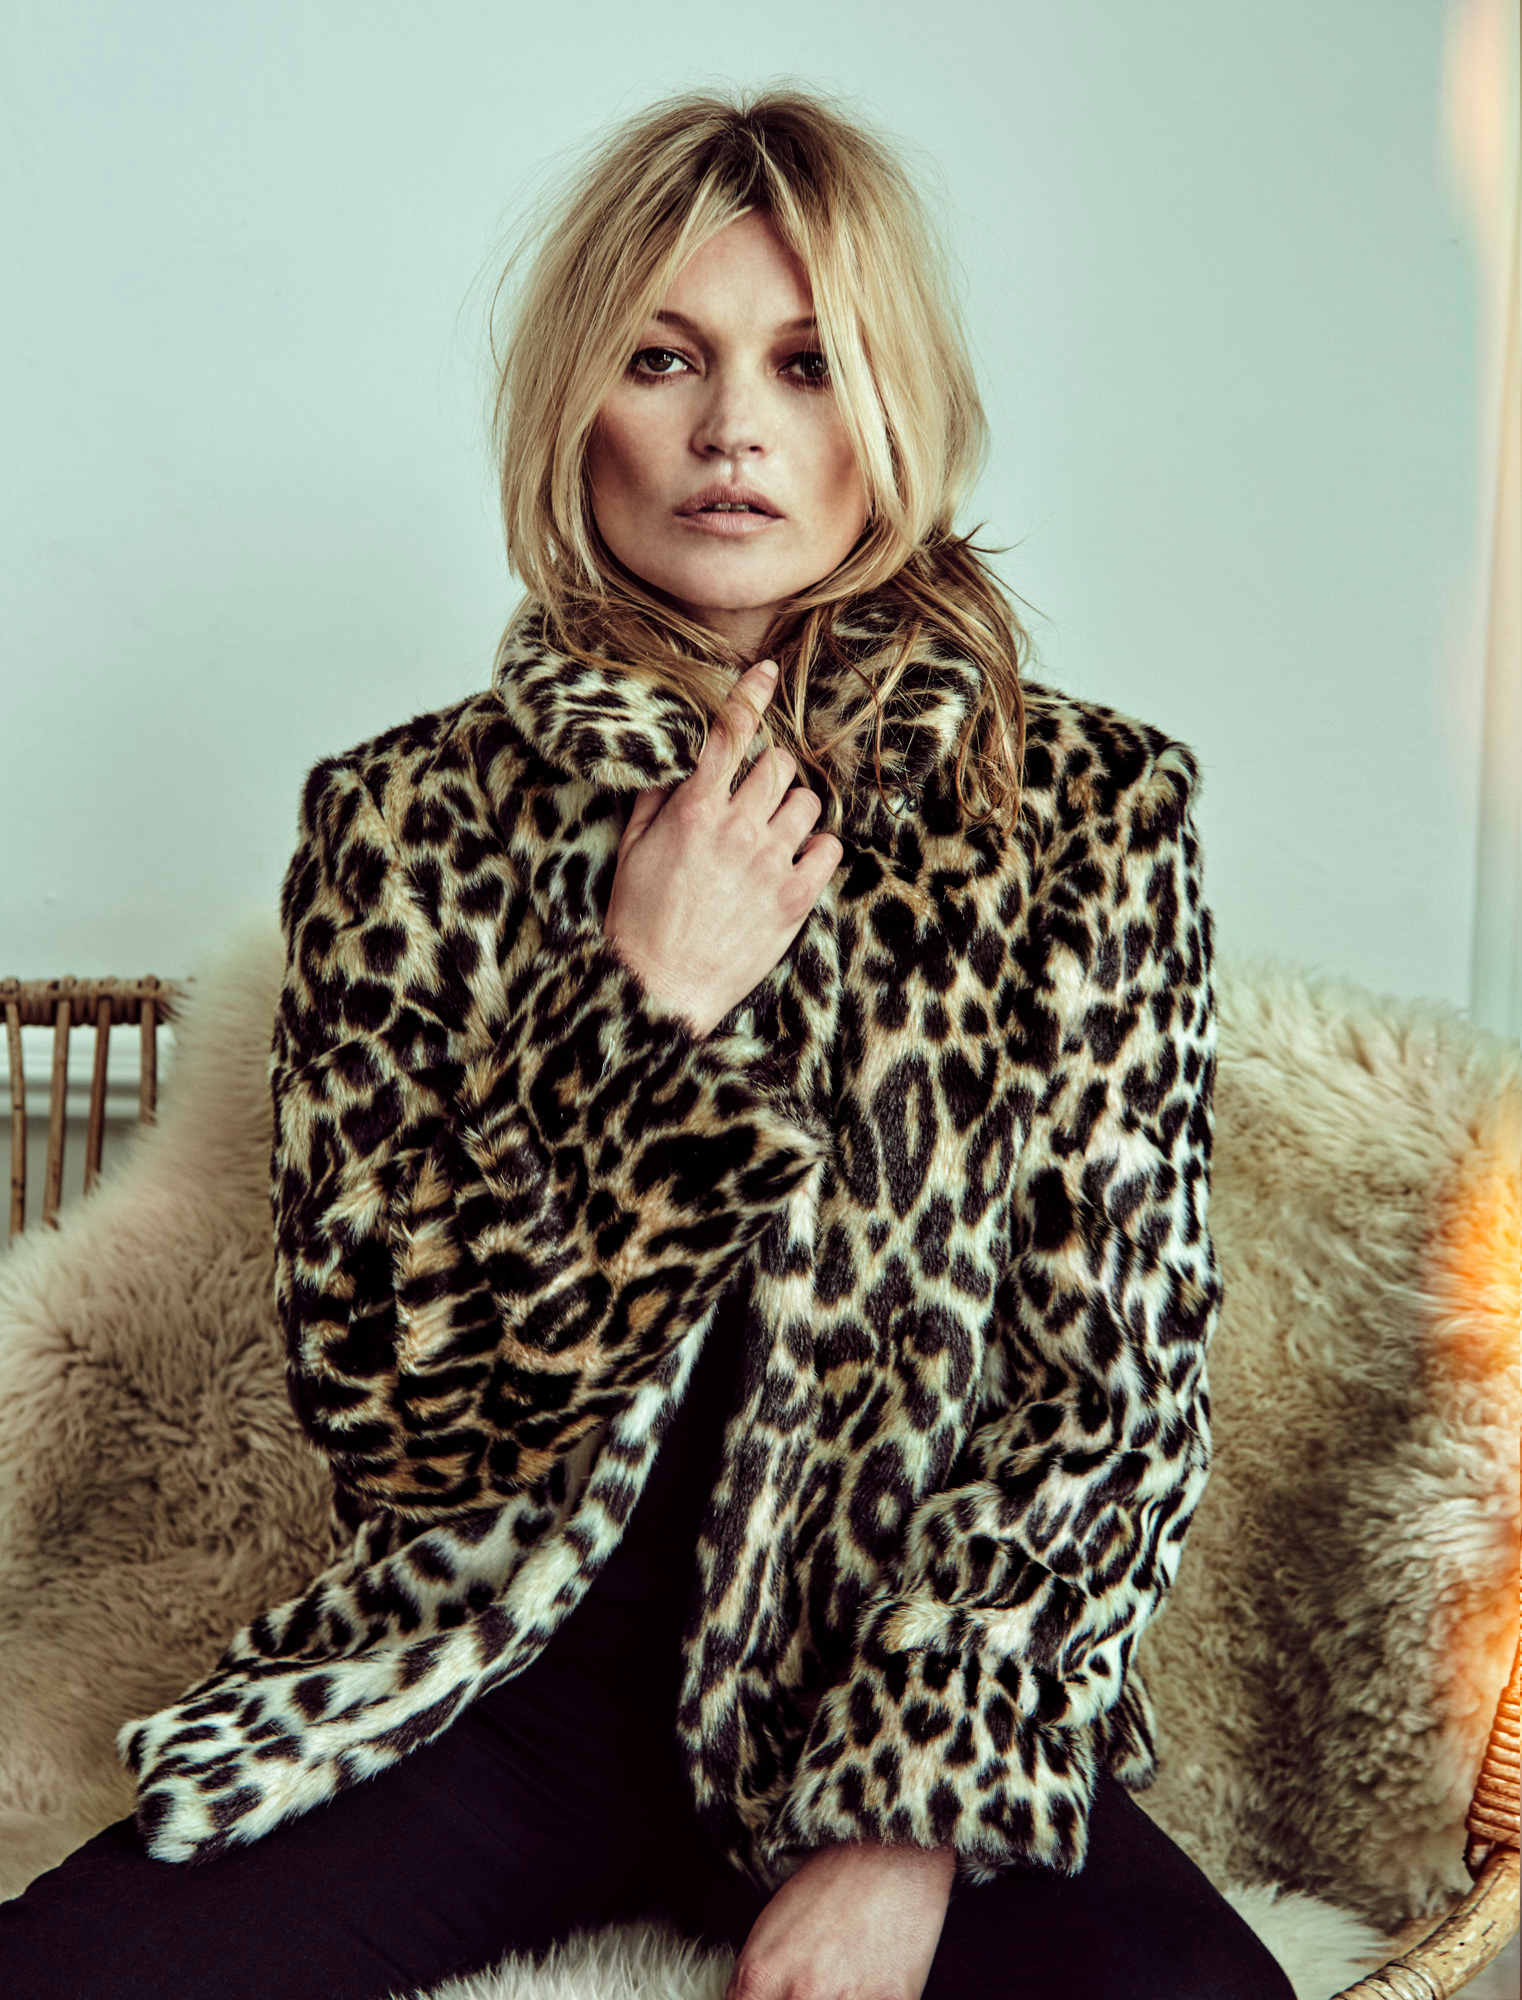 kate-moss-by-chris-colls-for-the-edit-june-2016-3.jpg